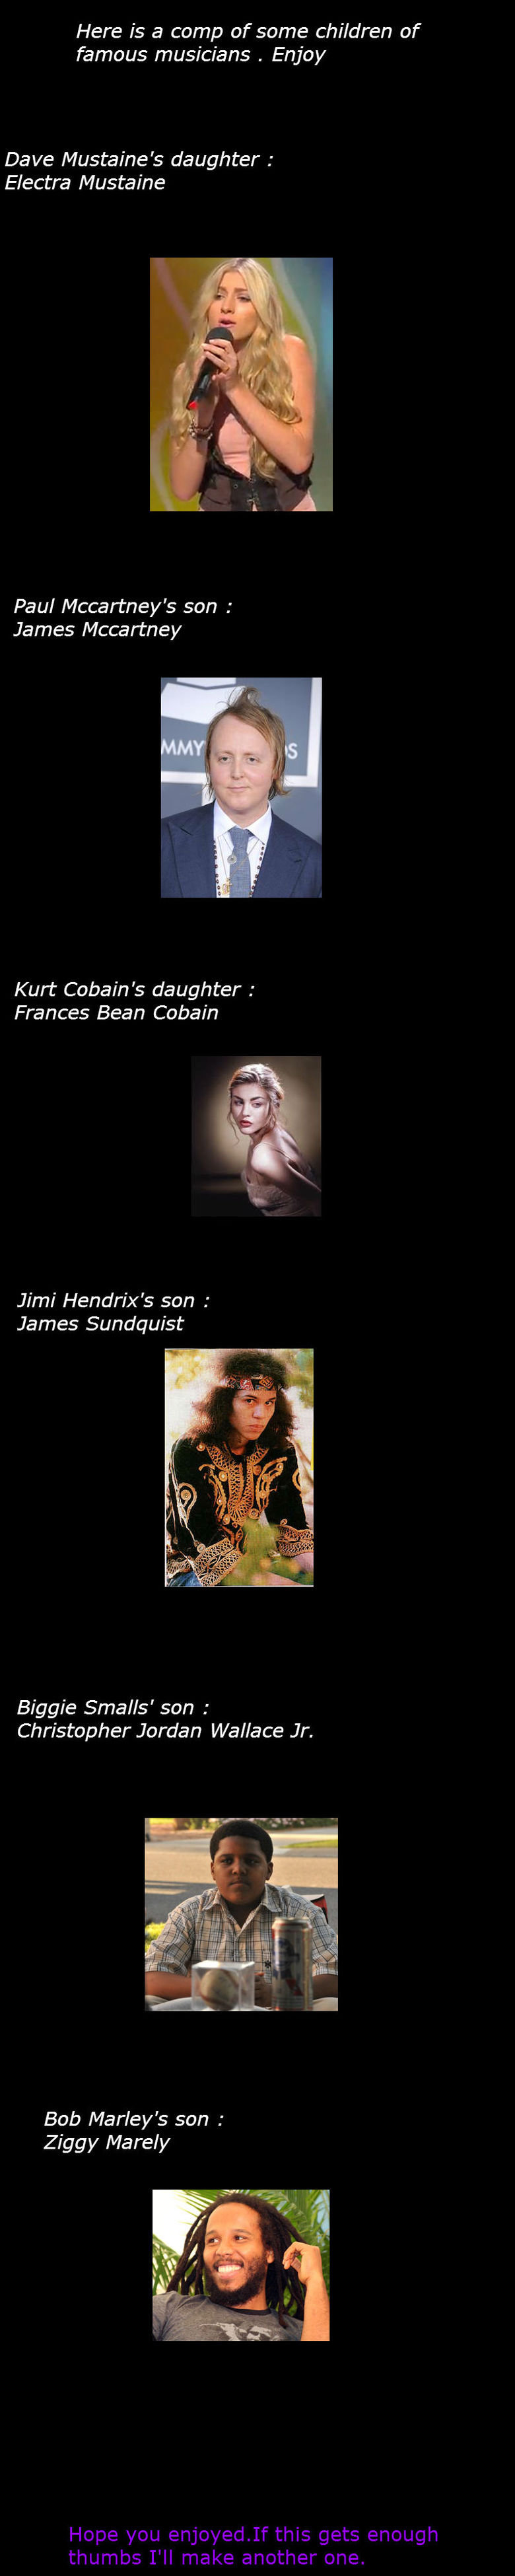 Children of famous musicians. Description. Here is a comp of some children of famous musicians . Enjoy Dave Mustaine' s daughter f Electra Mustaine Paul Mccartn